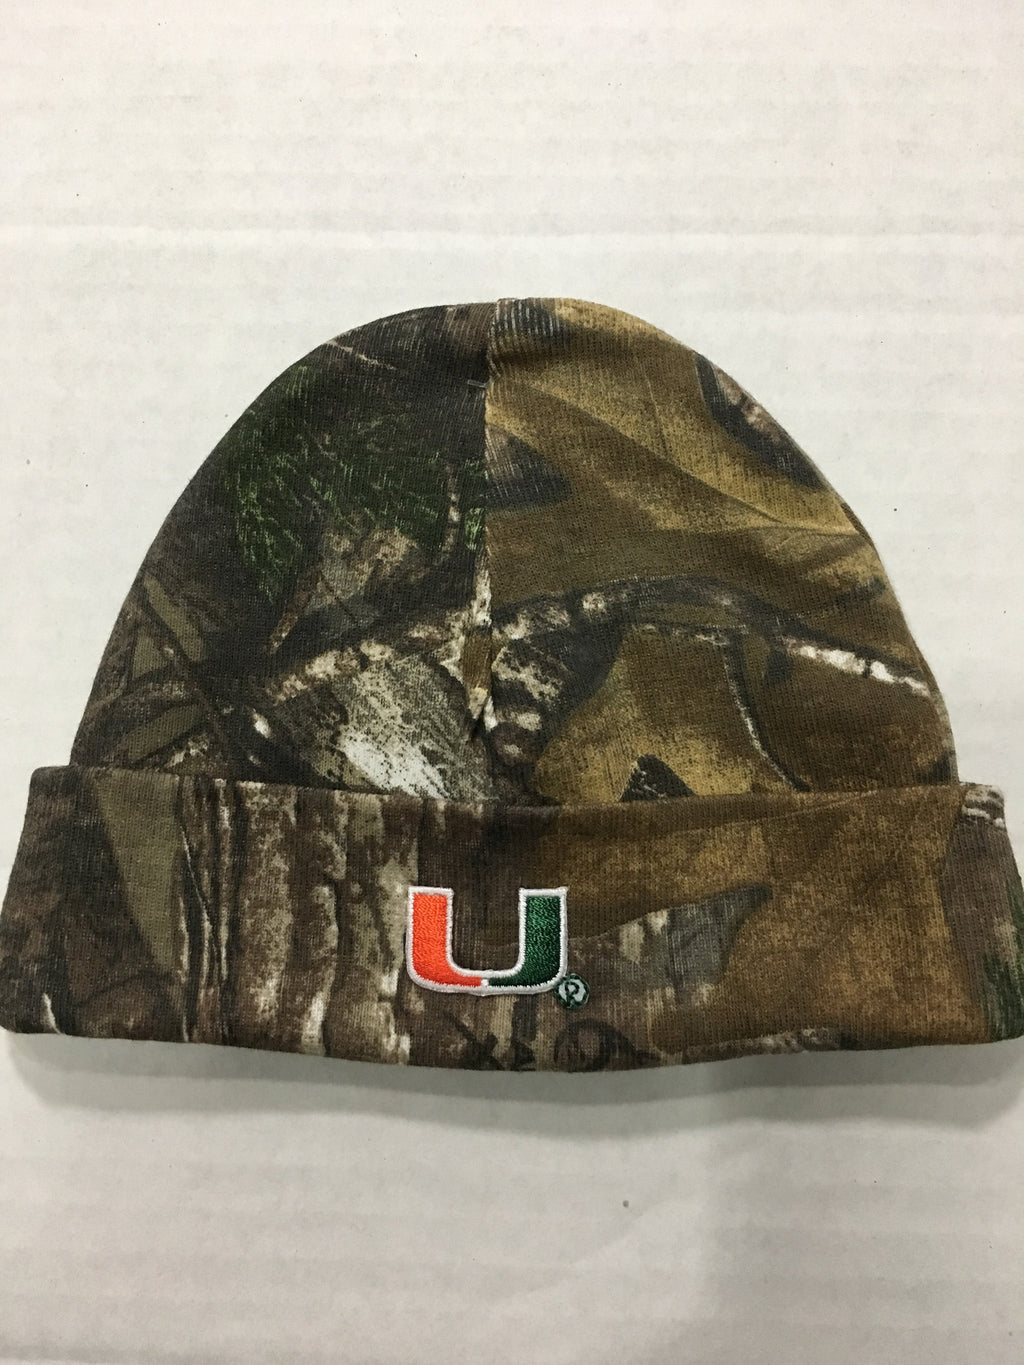 Miami Hurricanes Infant Knit Cap - Camo